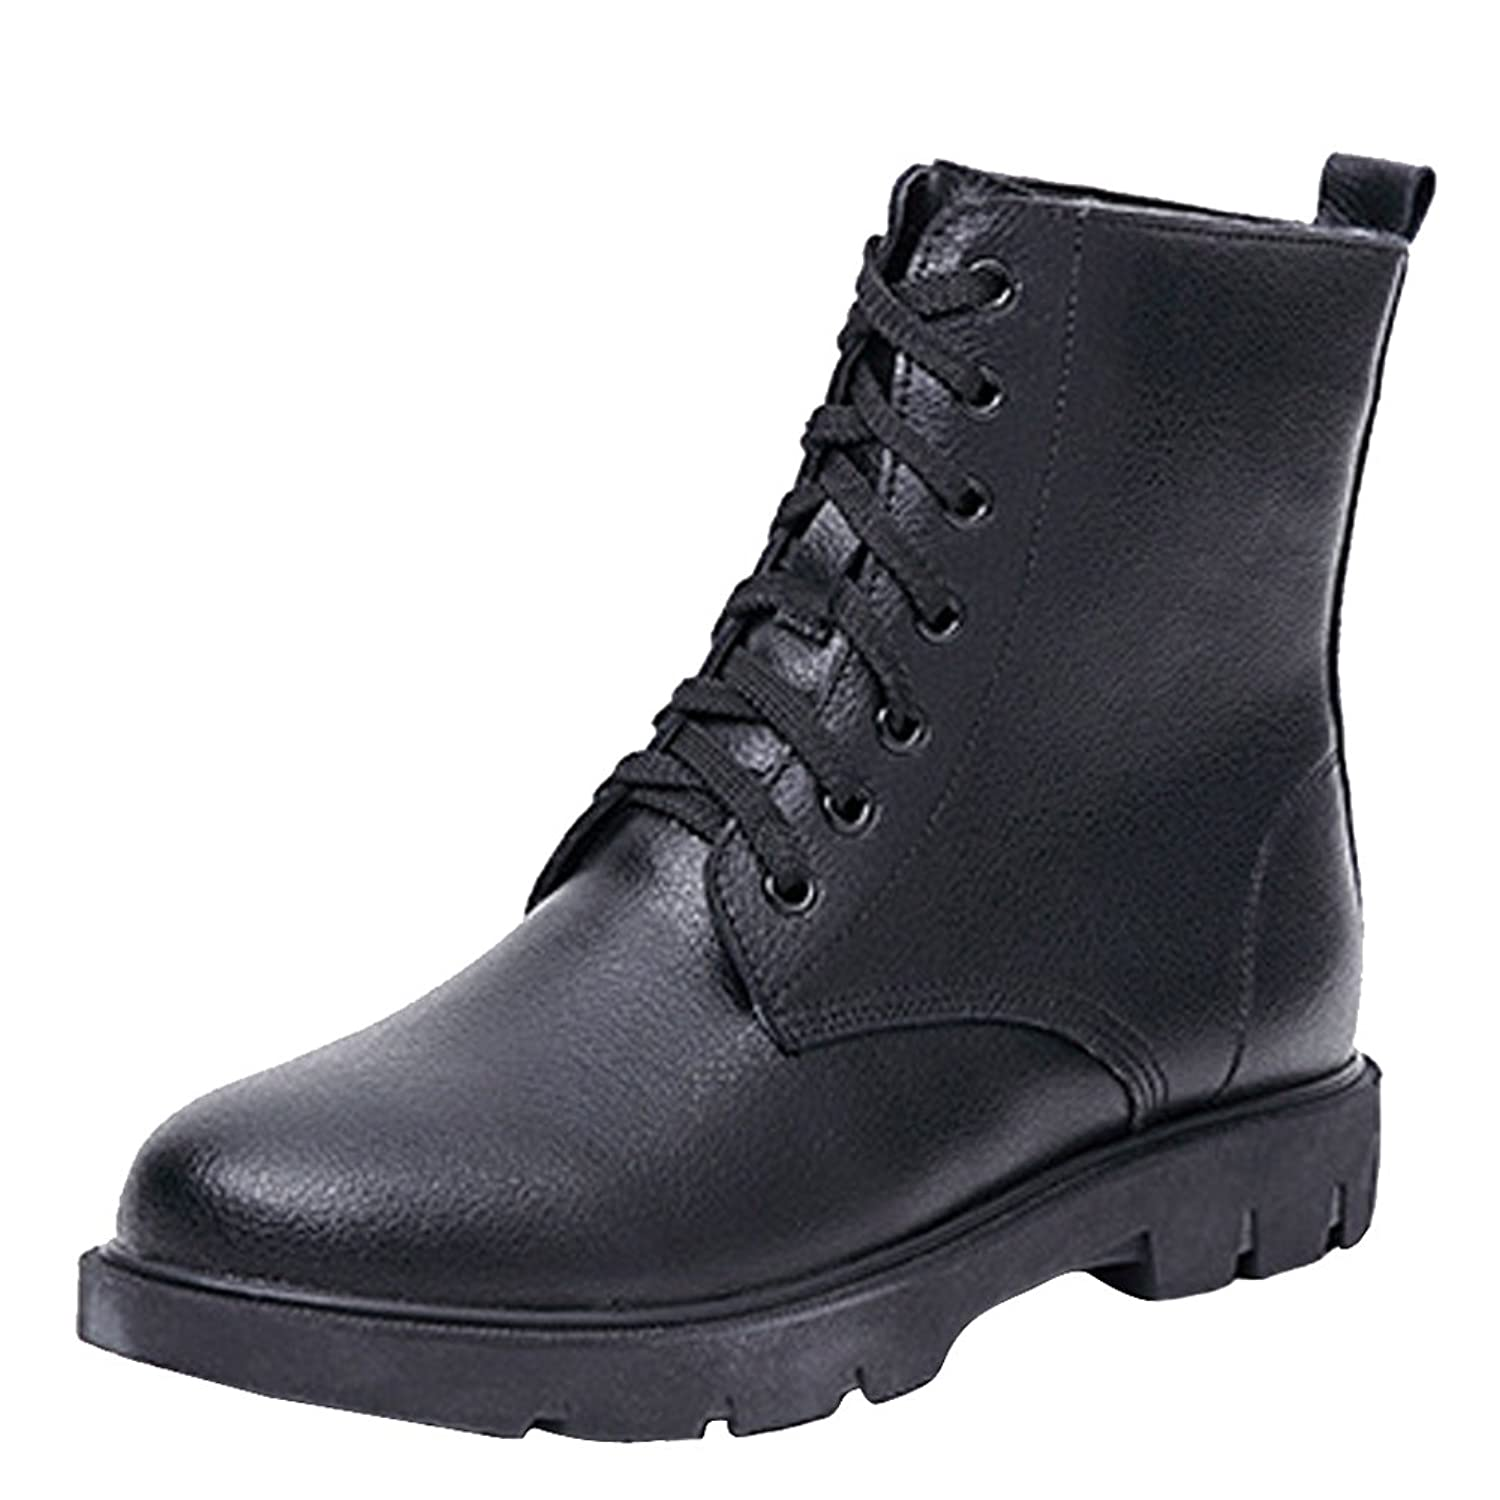 Aiyuda Women's Winter Leather Combat Boots with Fur Lining Military Warm Low Heel Punk Martin Booties